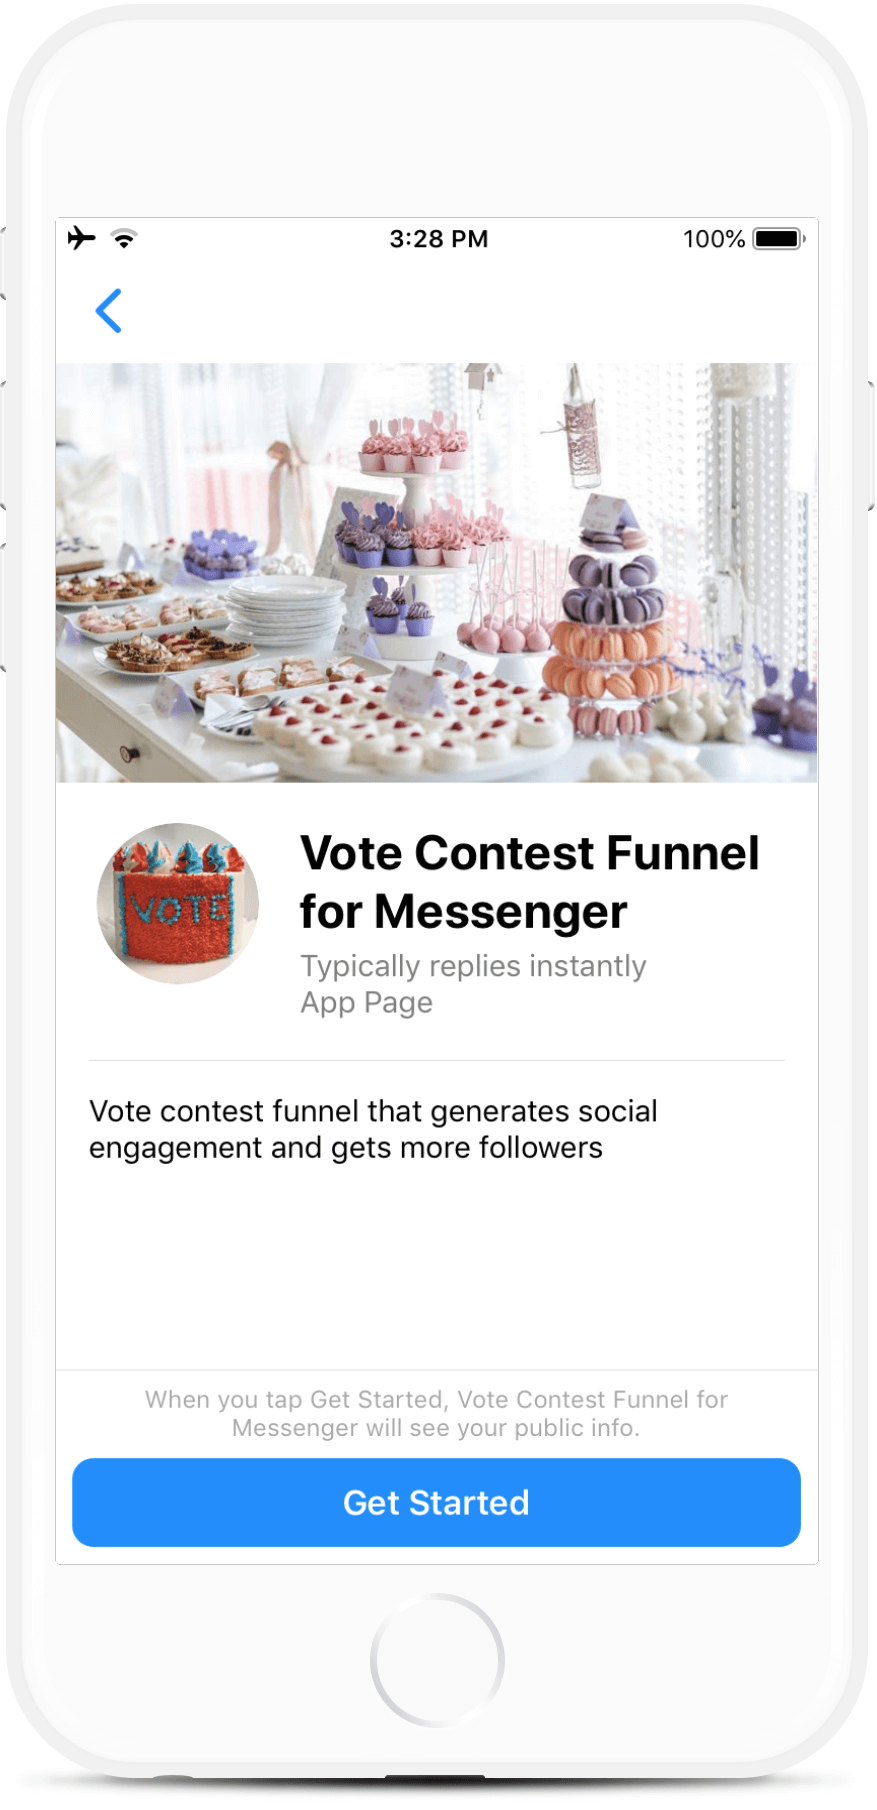 Vote Contest Funnel for Facebook Messenger